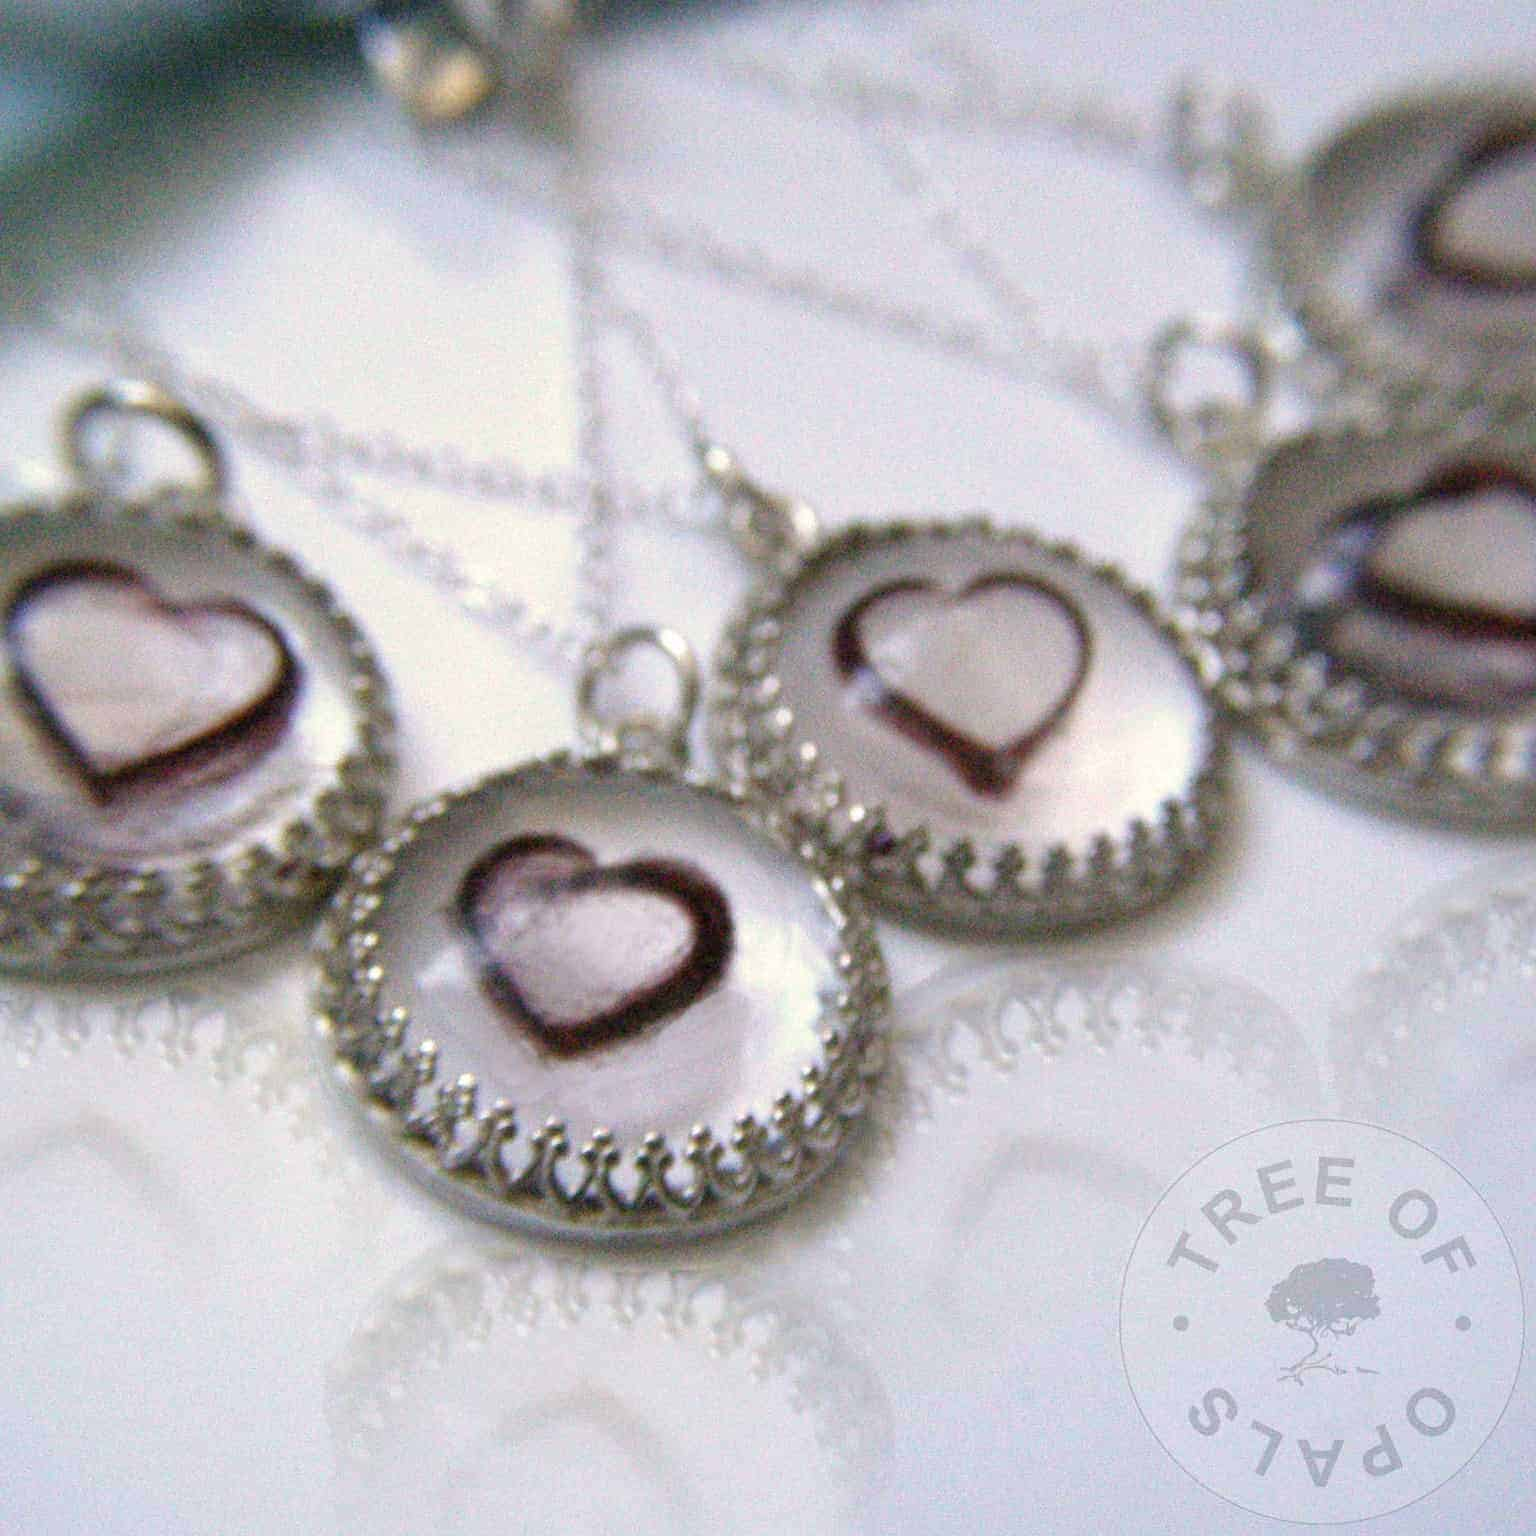 family order lock of hair necklaces with heart shaped hair